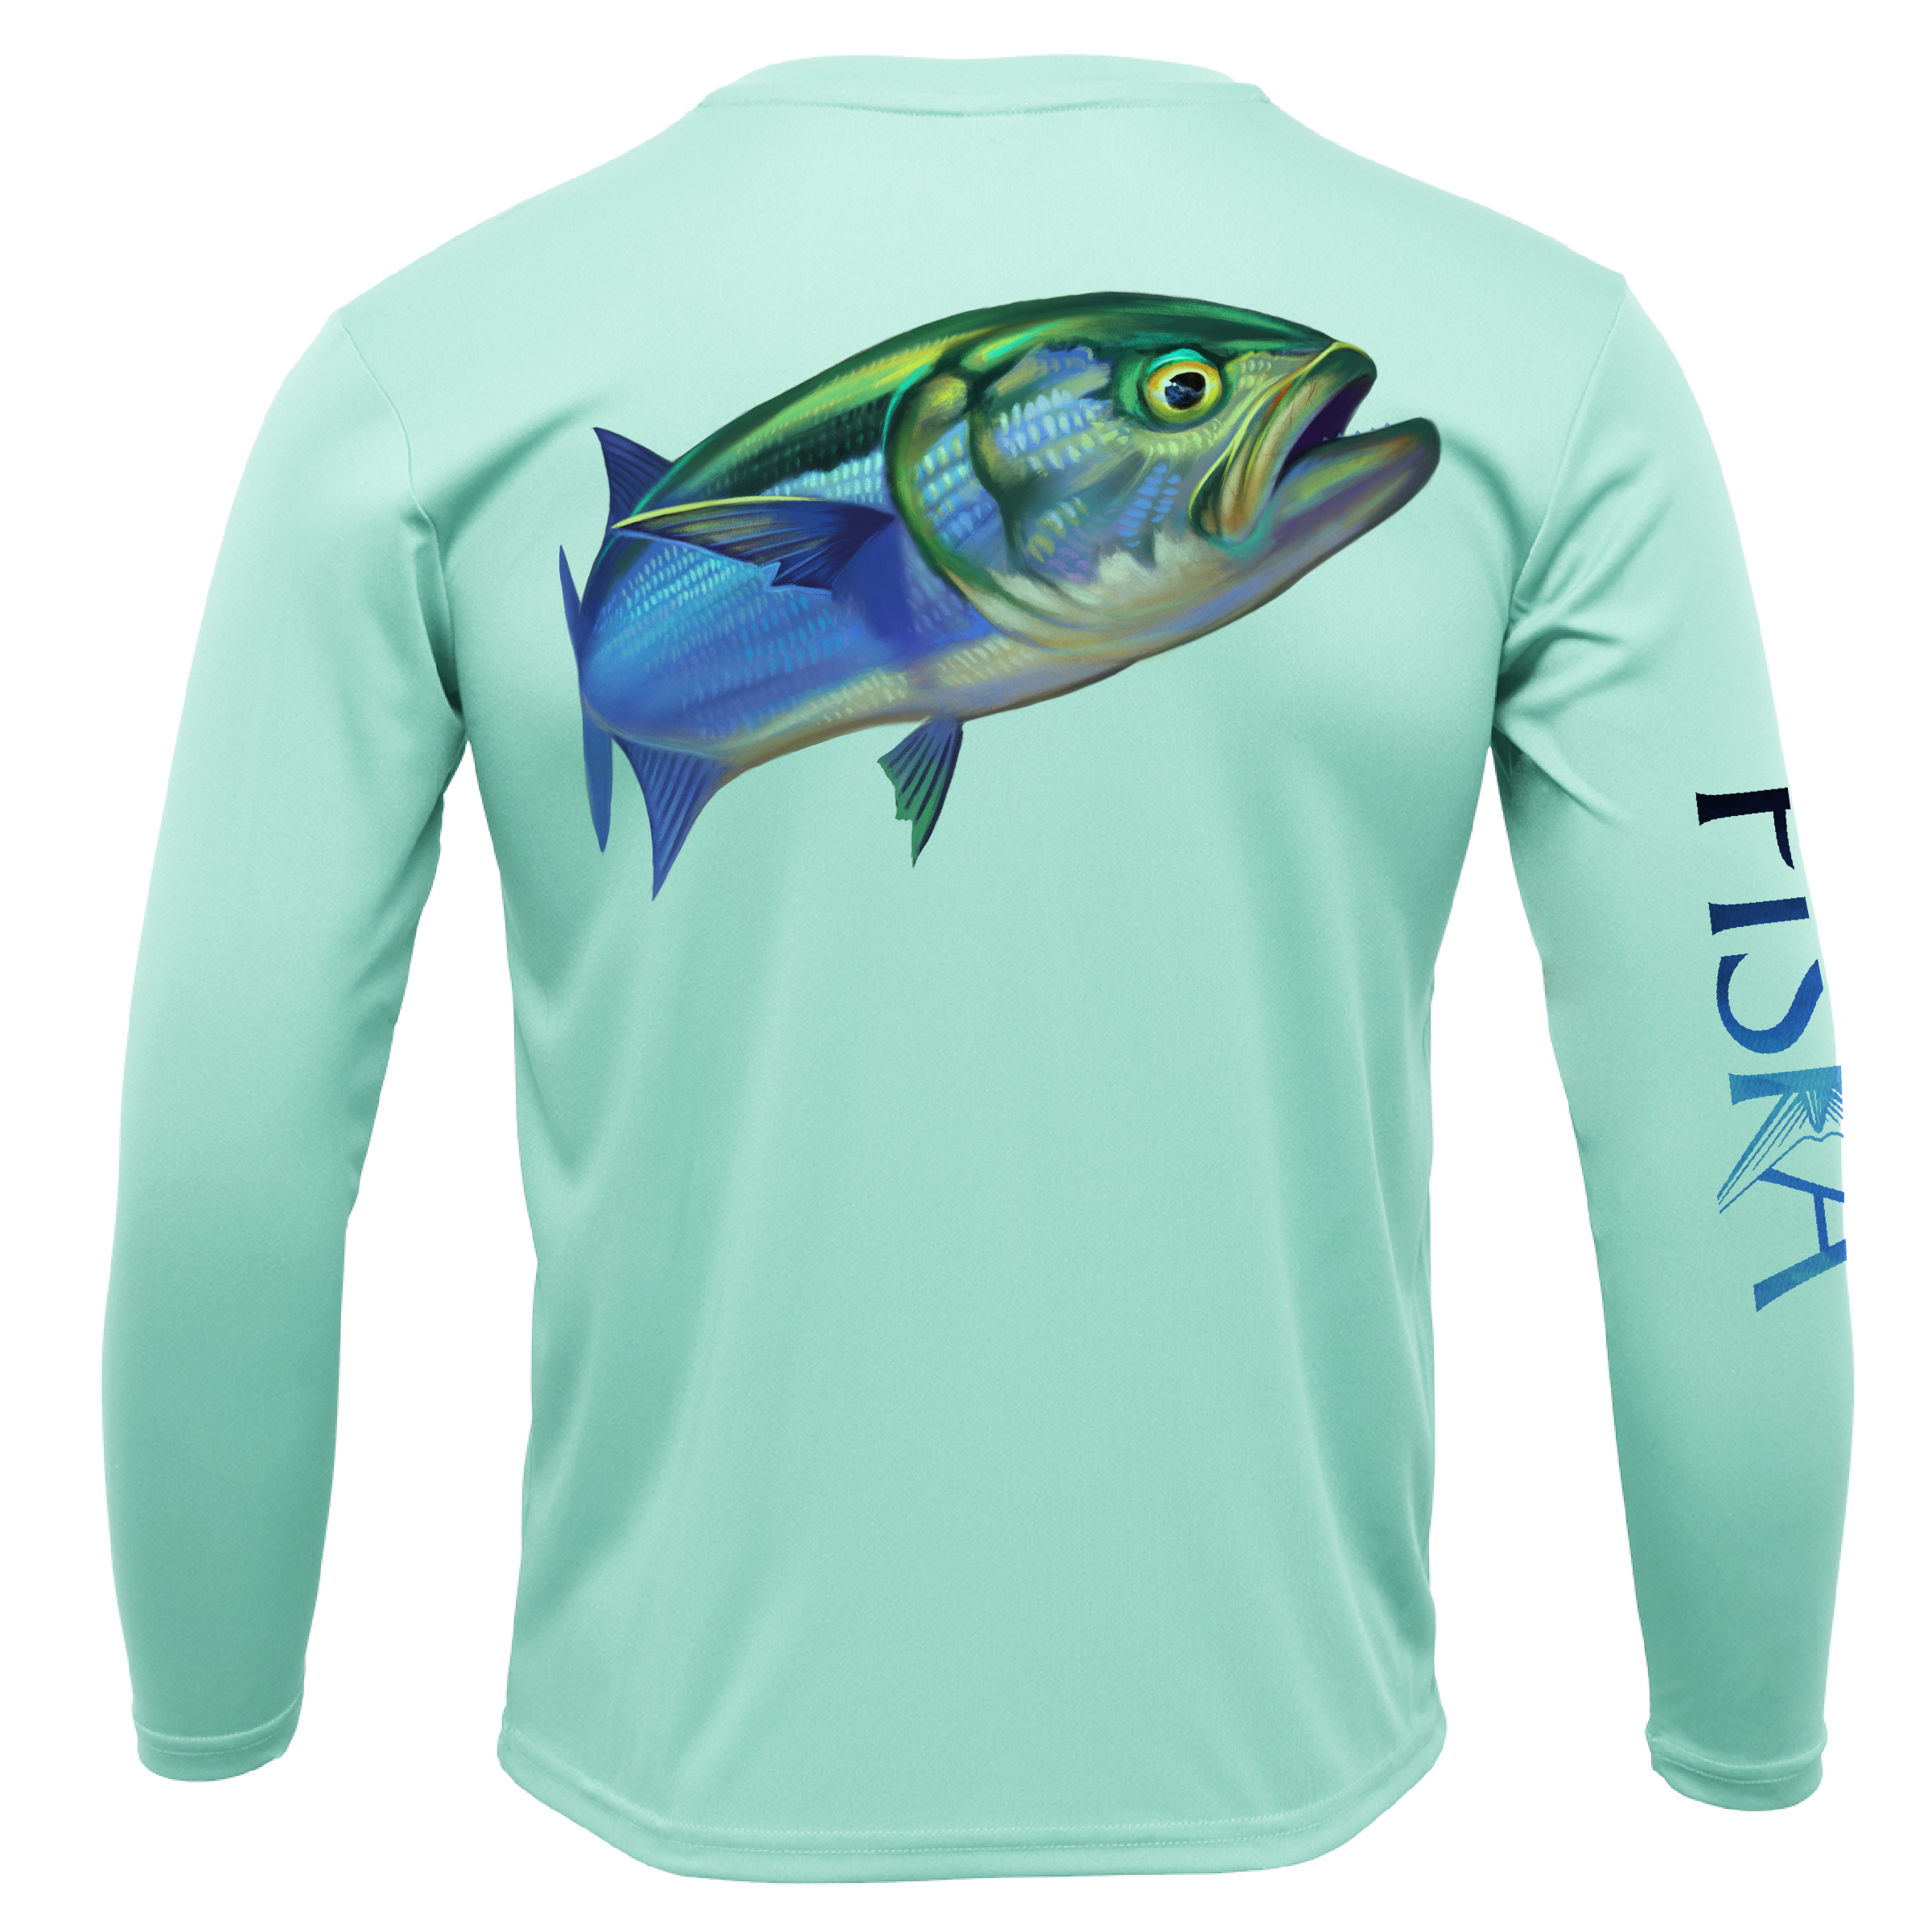 Youth Bluefish Long-Sleeve Dry-Fit Shirt